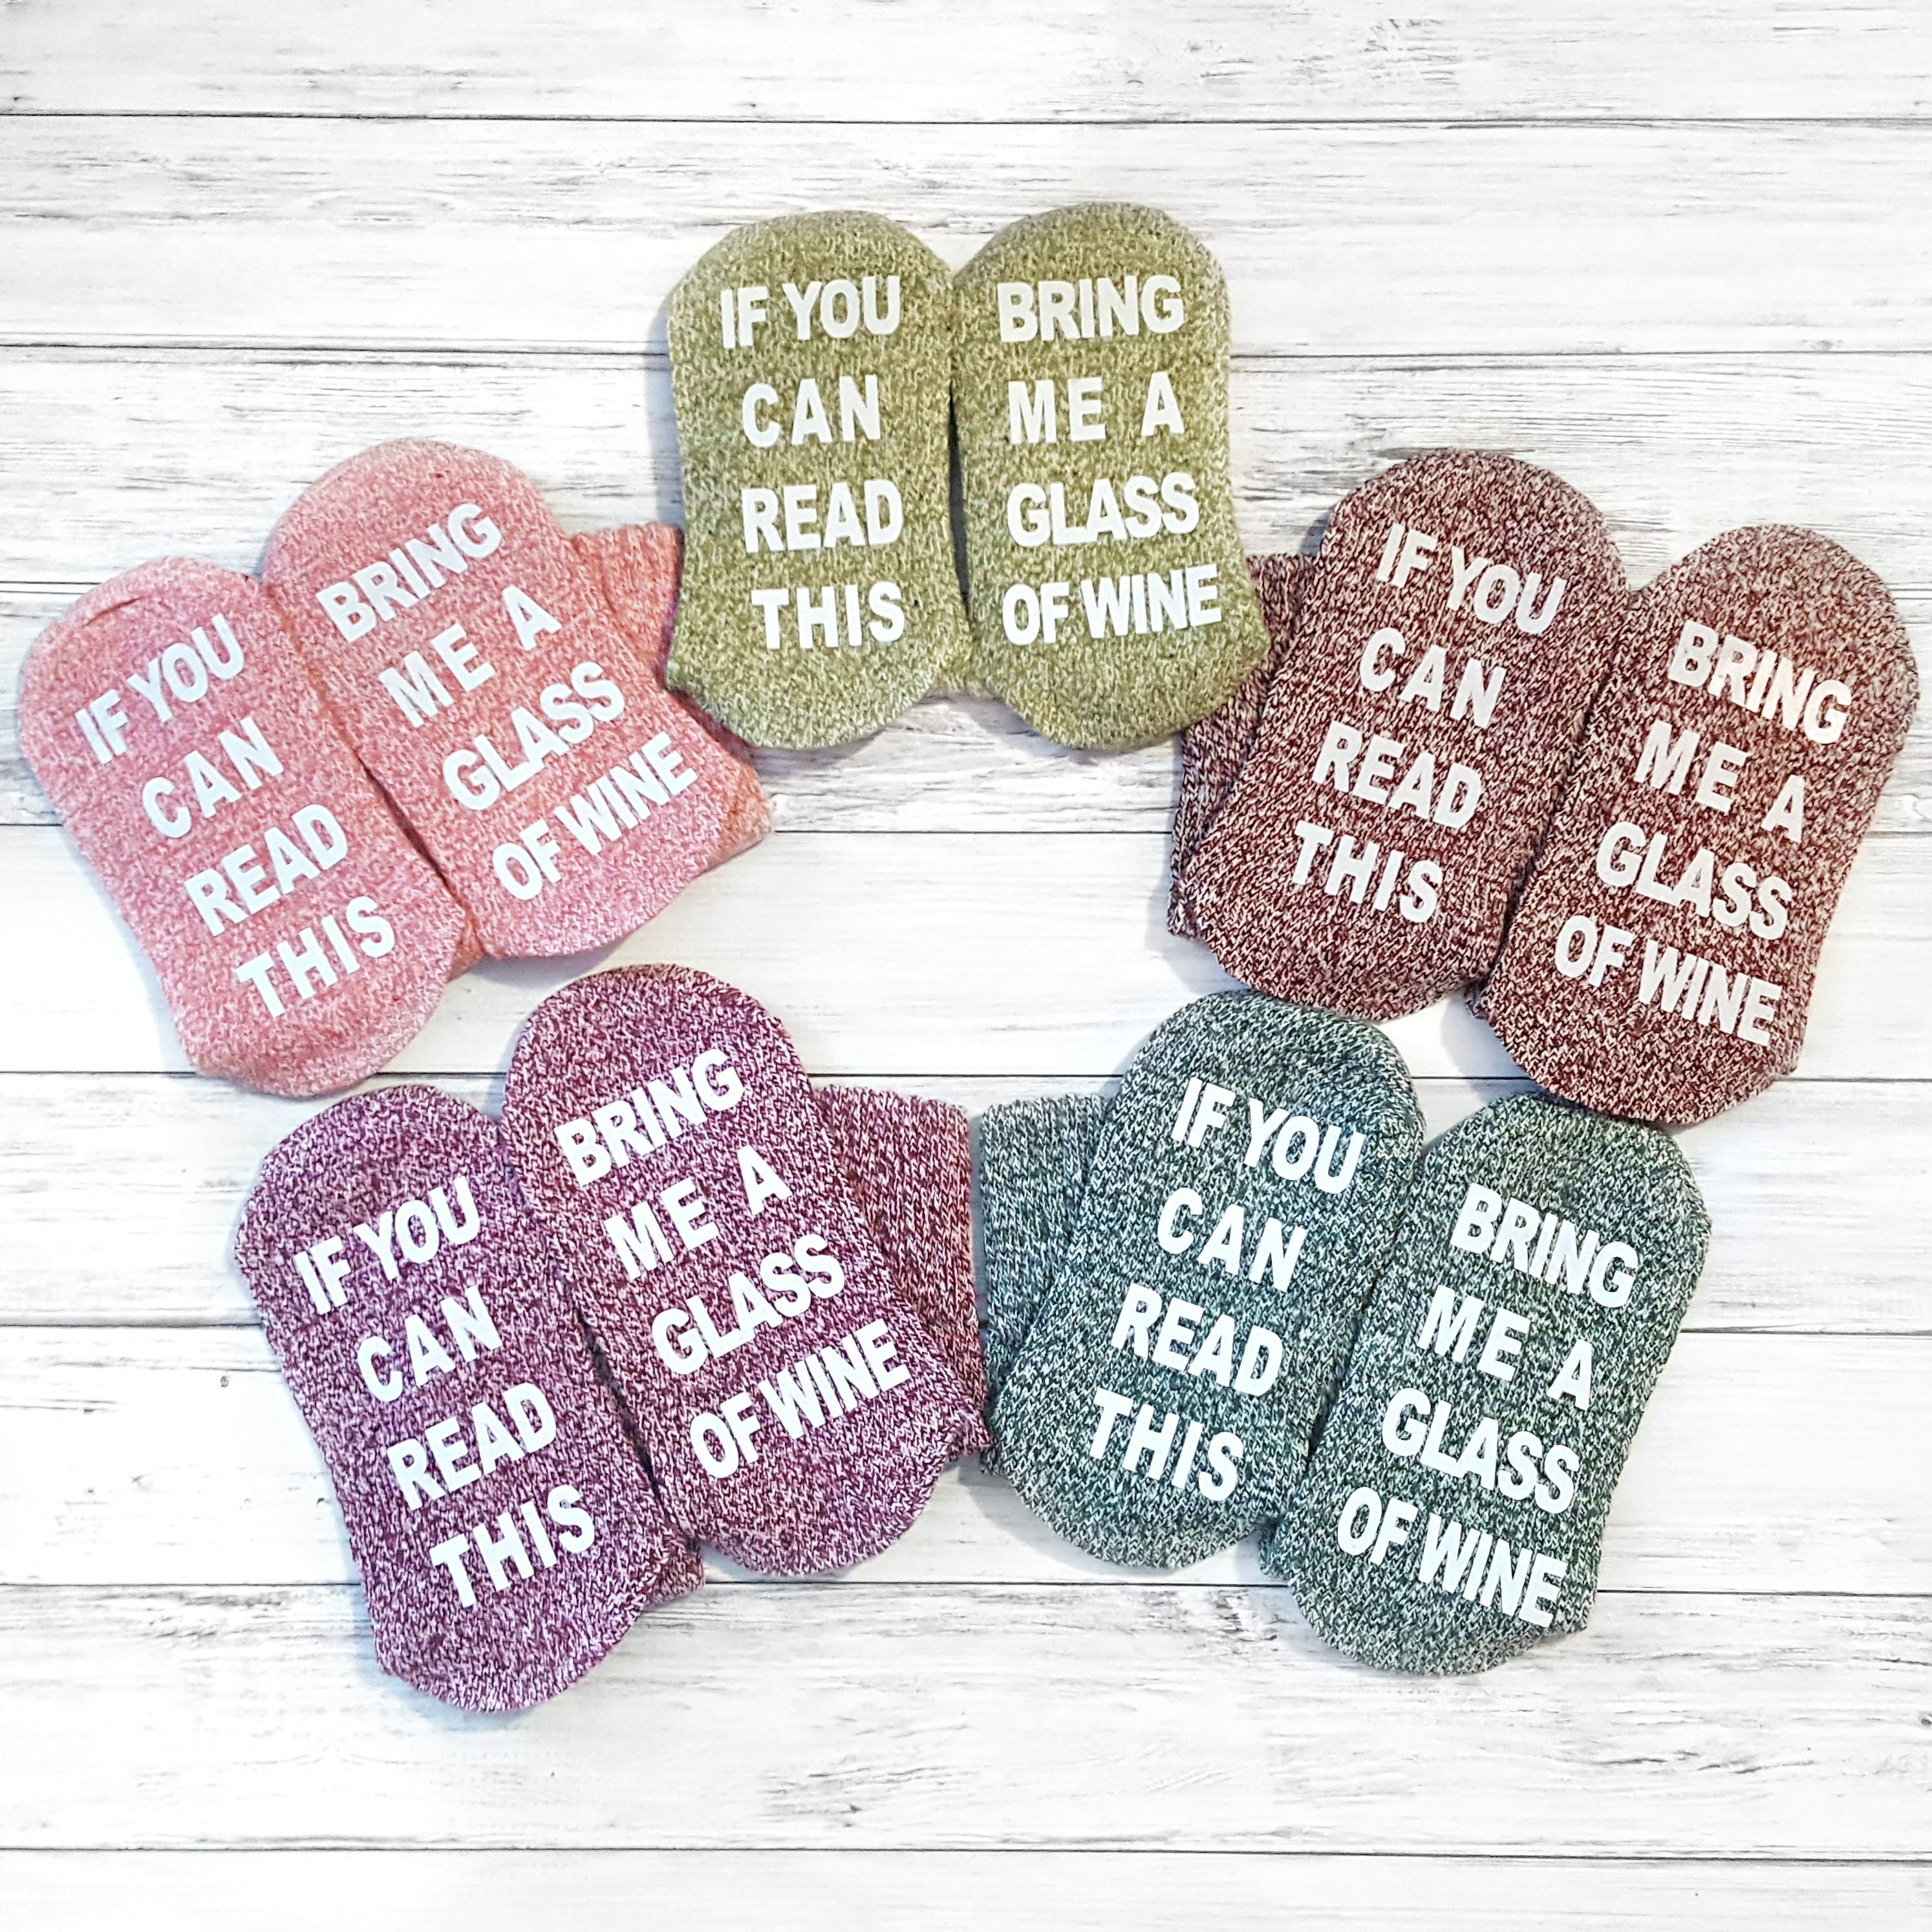 Gift ideas for wives etsy wine socks 21st birthday gift ideas if you can read this bring me a negle Images